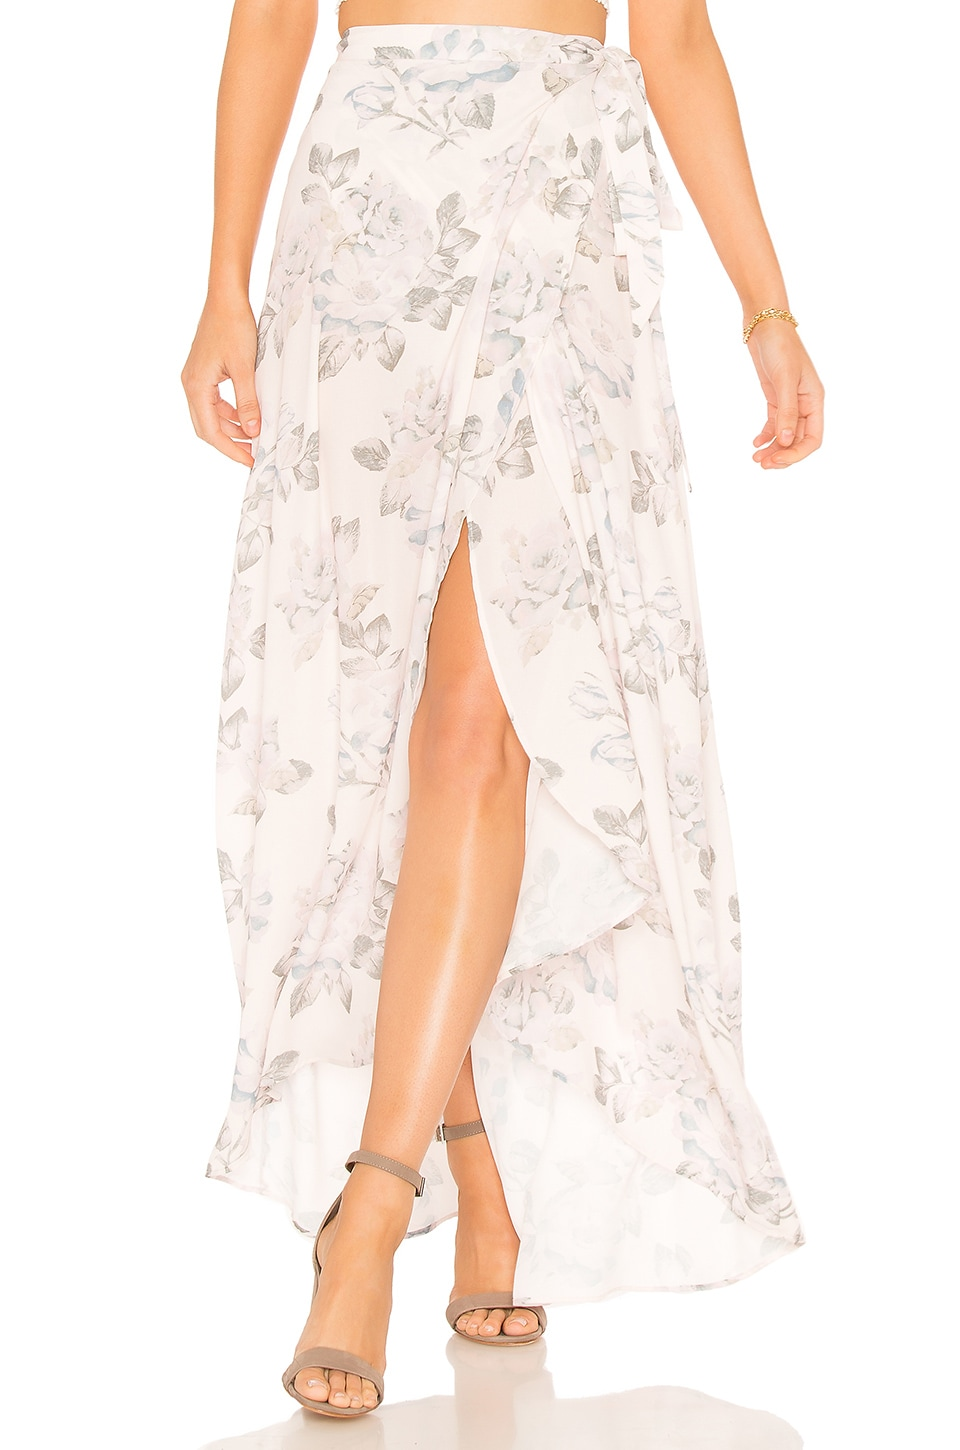 Show Me Your Mumu Siren Wrap Skirt in Everlasting Rose